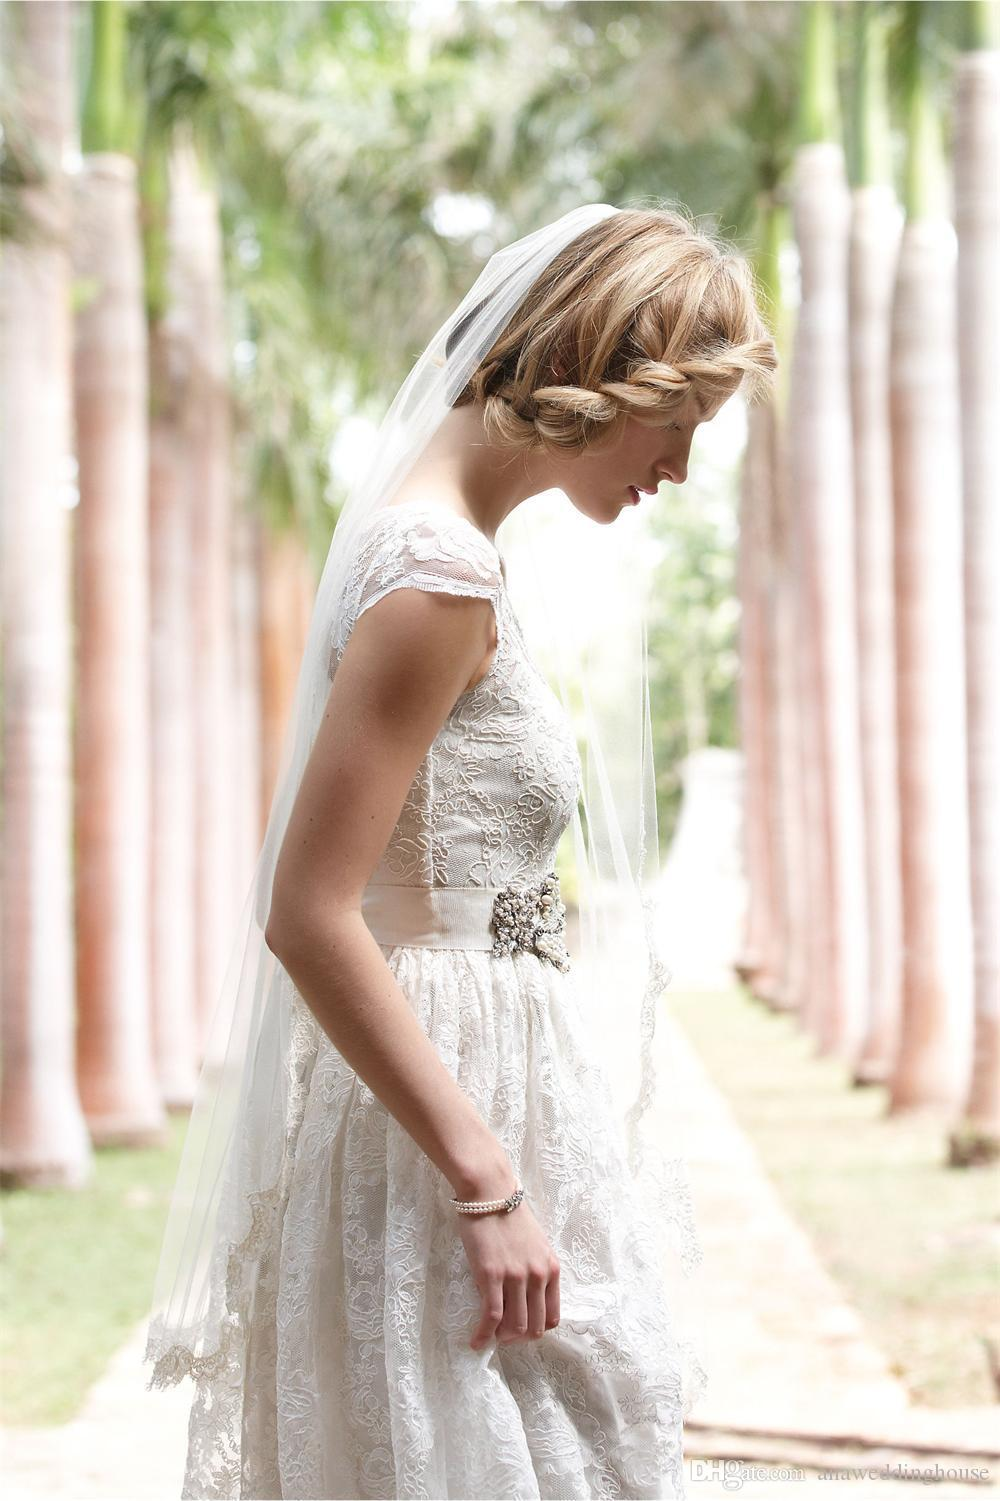 Amazing Lace Cheaper Wedding Dresses Sheer Neck Capped Sleeve A Line Floor Length Sash Vintage Bridal Gowns